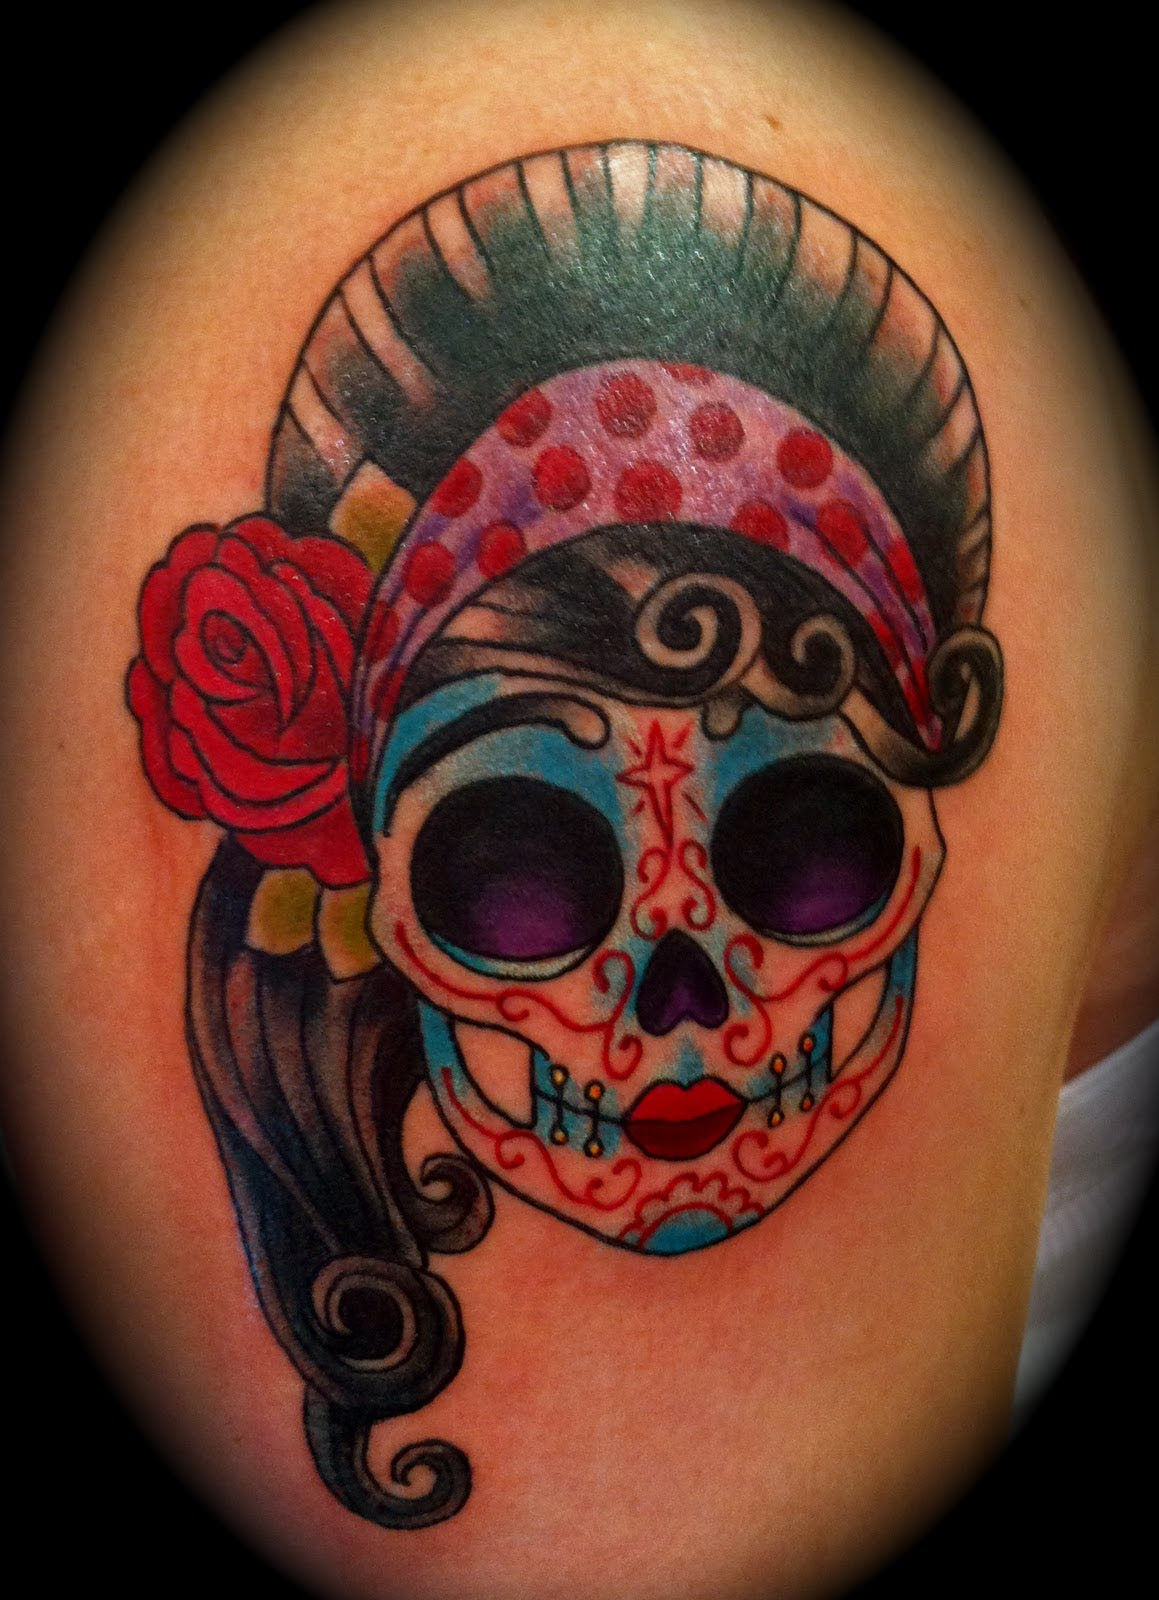 Girly Sugar Skull Tattoo On Sleeve